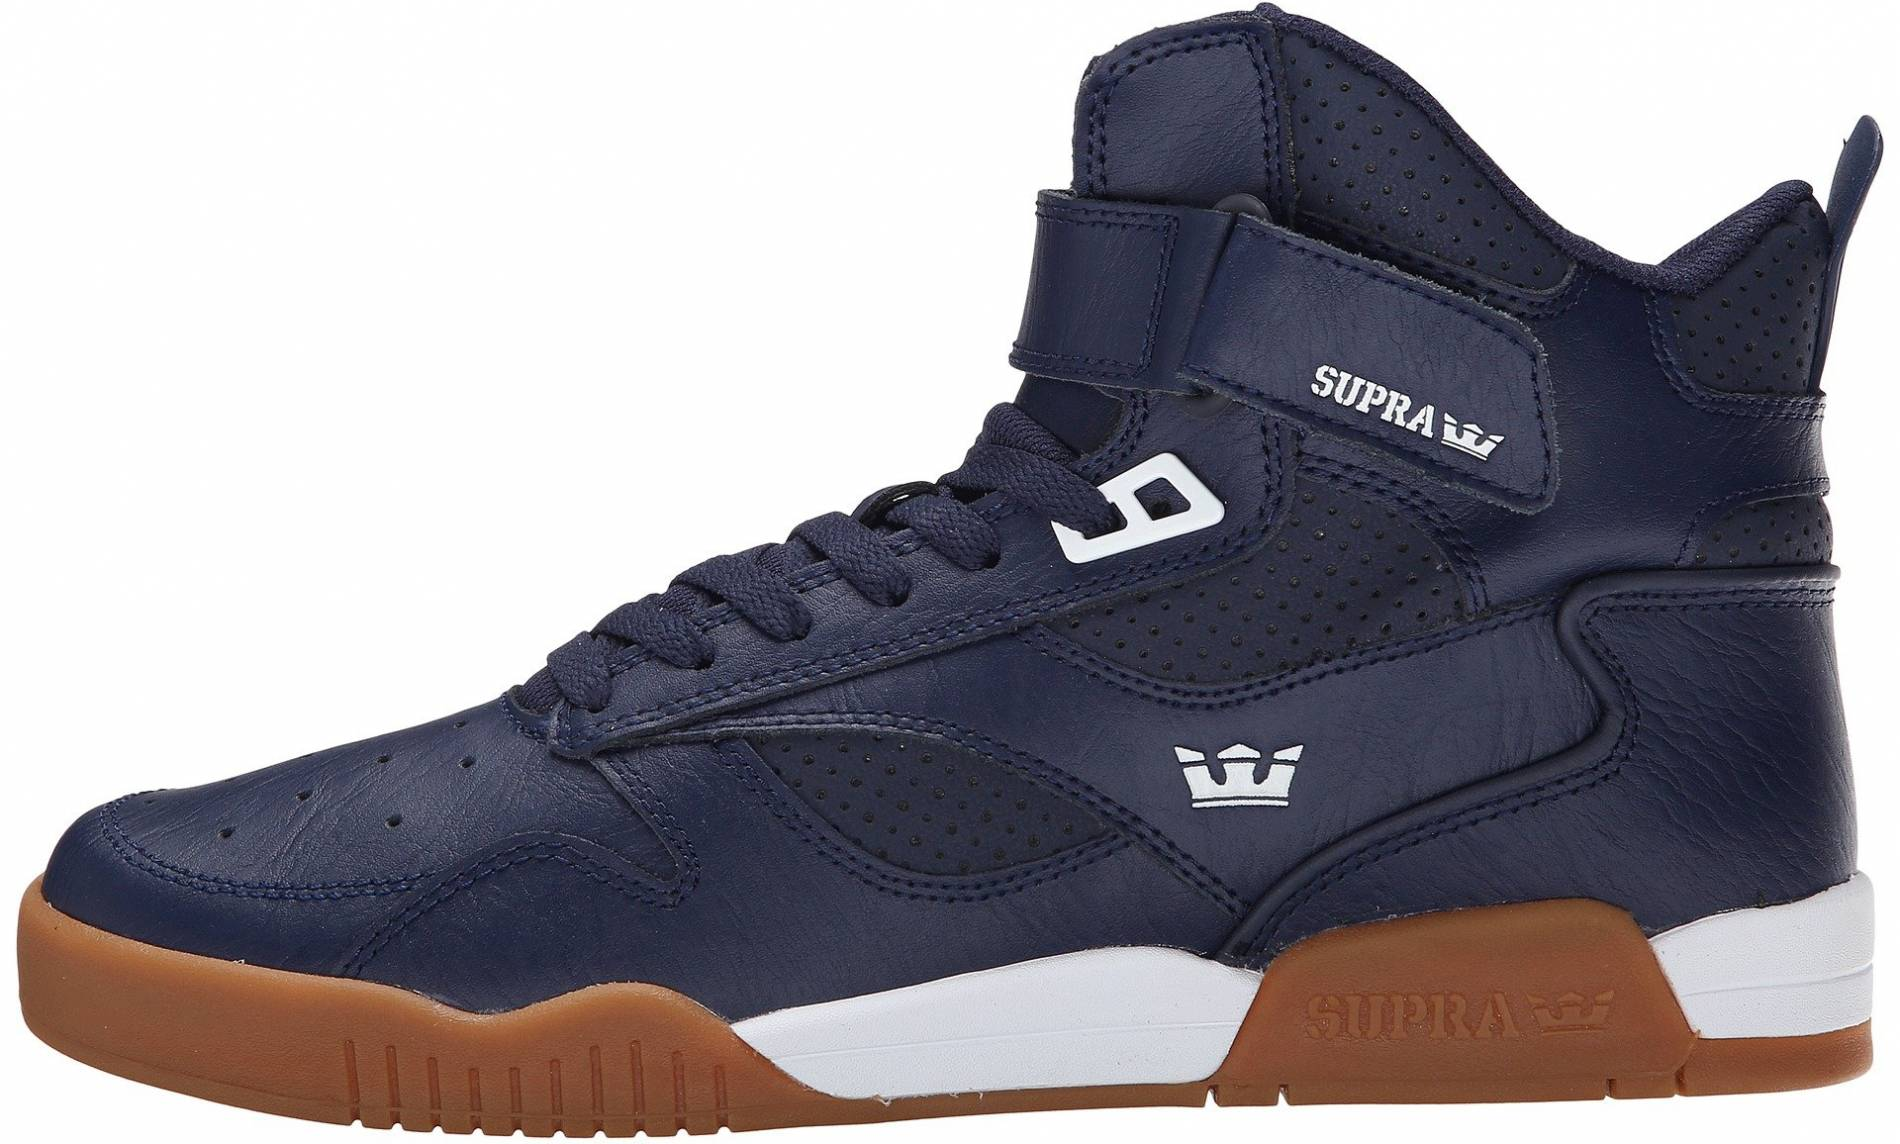 Only $110 + Review of Supra Bleeker